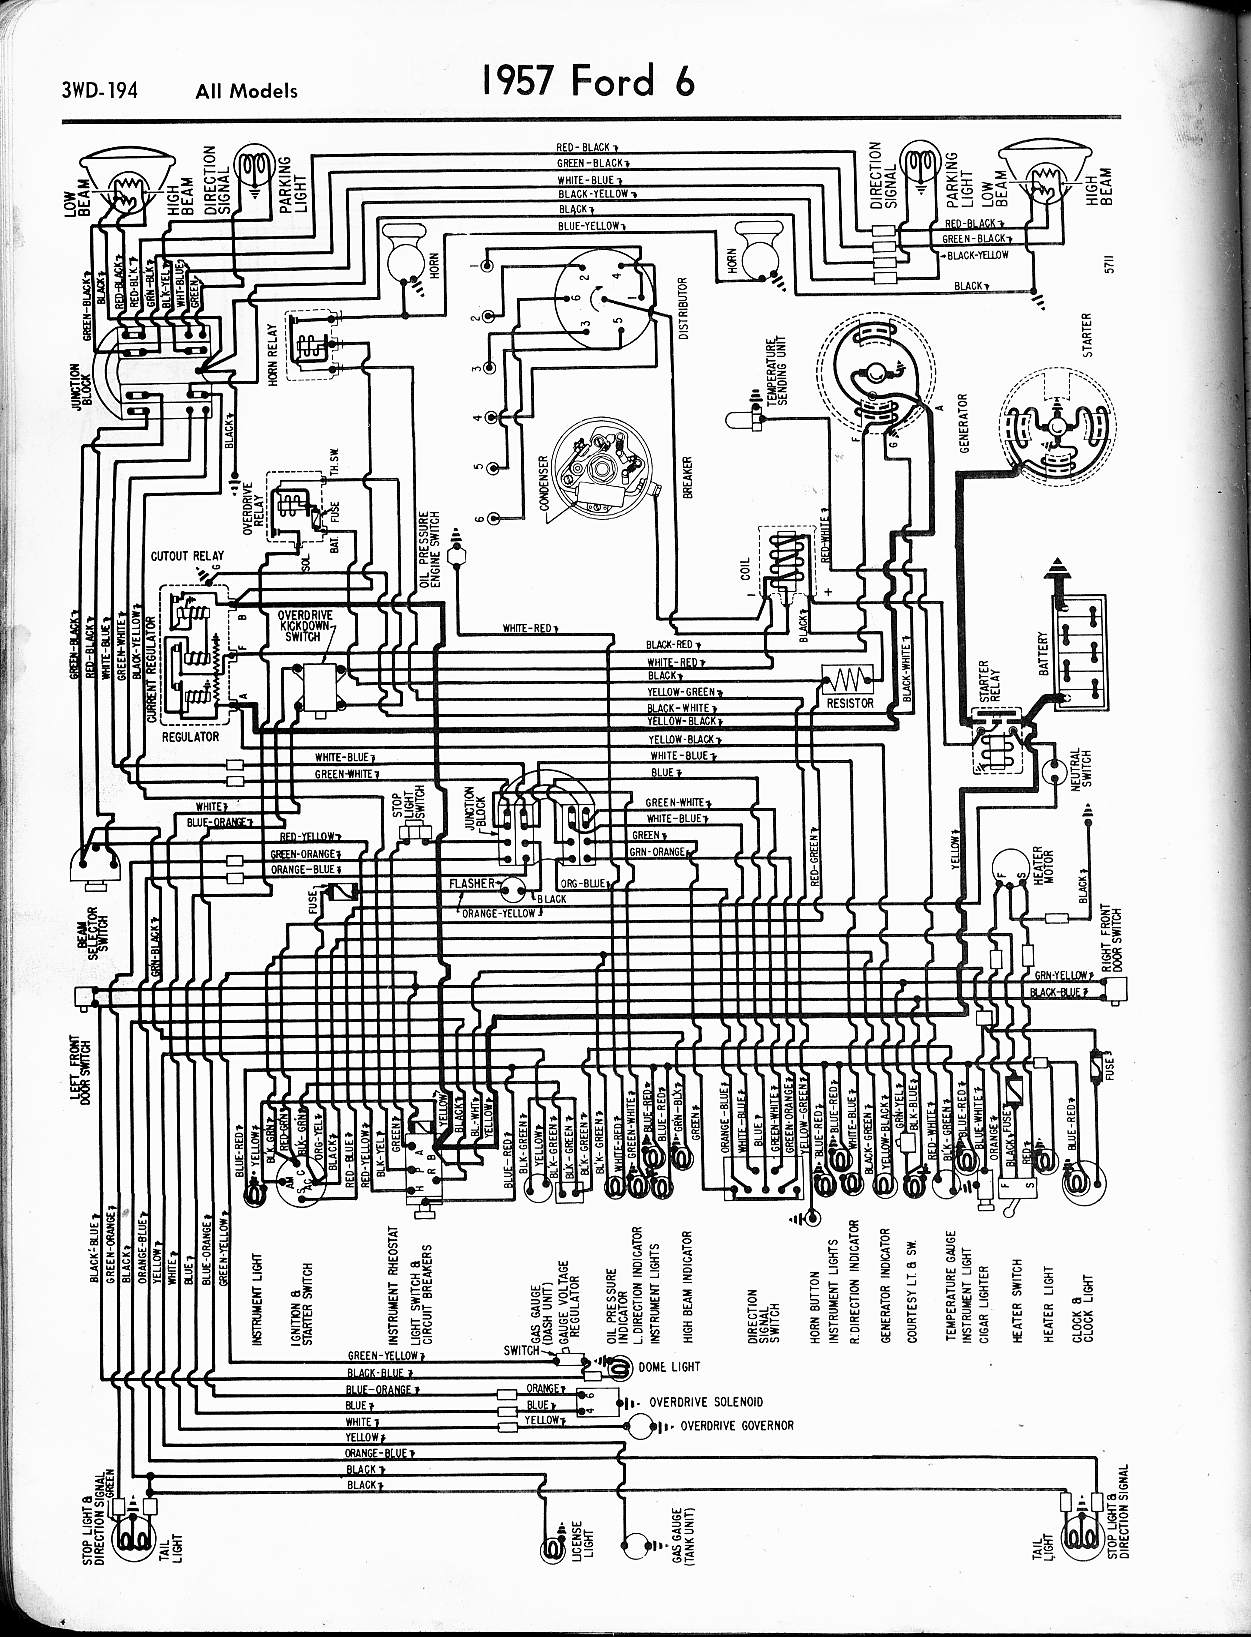 1365351 Installing C6 Rebuilt Transmission Crossmember Problems furthermore 1363918 Aod Kickdown To Tv Cable Change in addition Schematics i as well 1966 Color Codes Chevrolet Paint Cross Reference moreover Wiring Diagram Xrm 110. on 1964 ford ranchero wiring diagrams